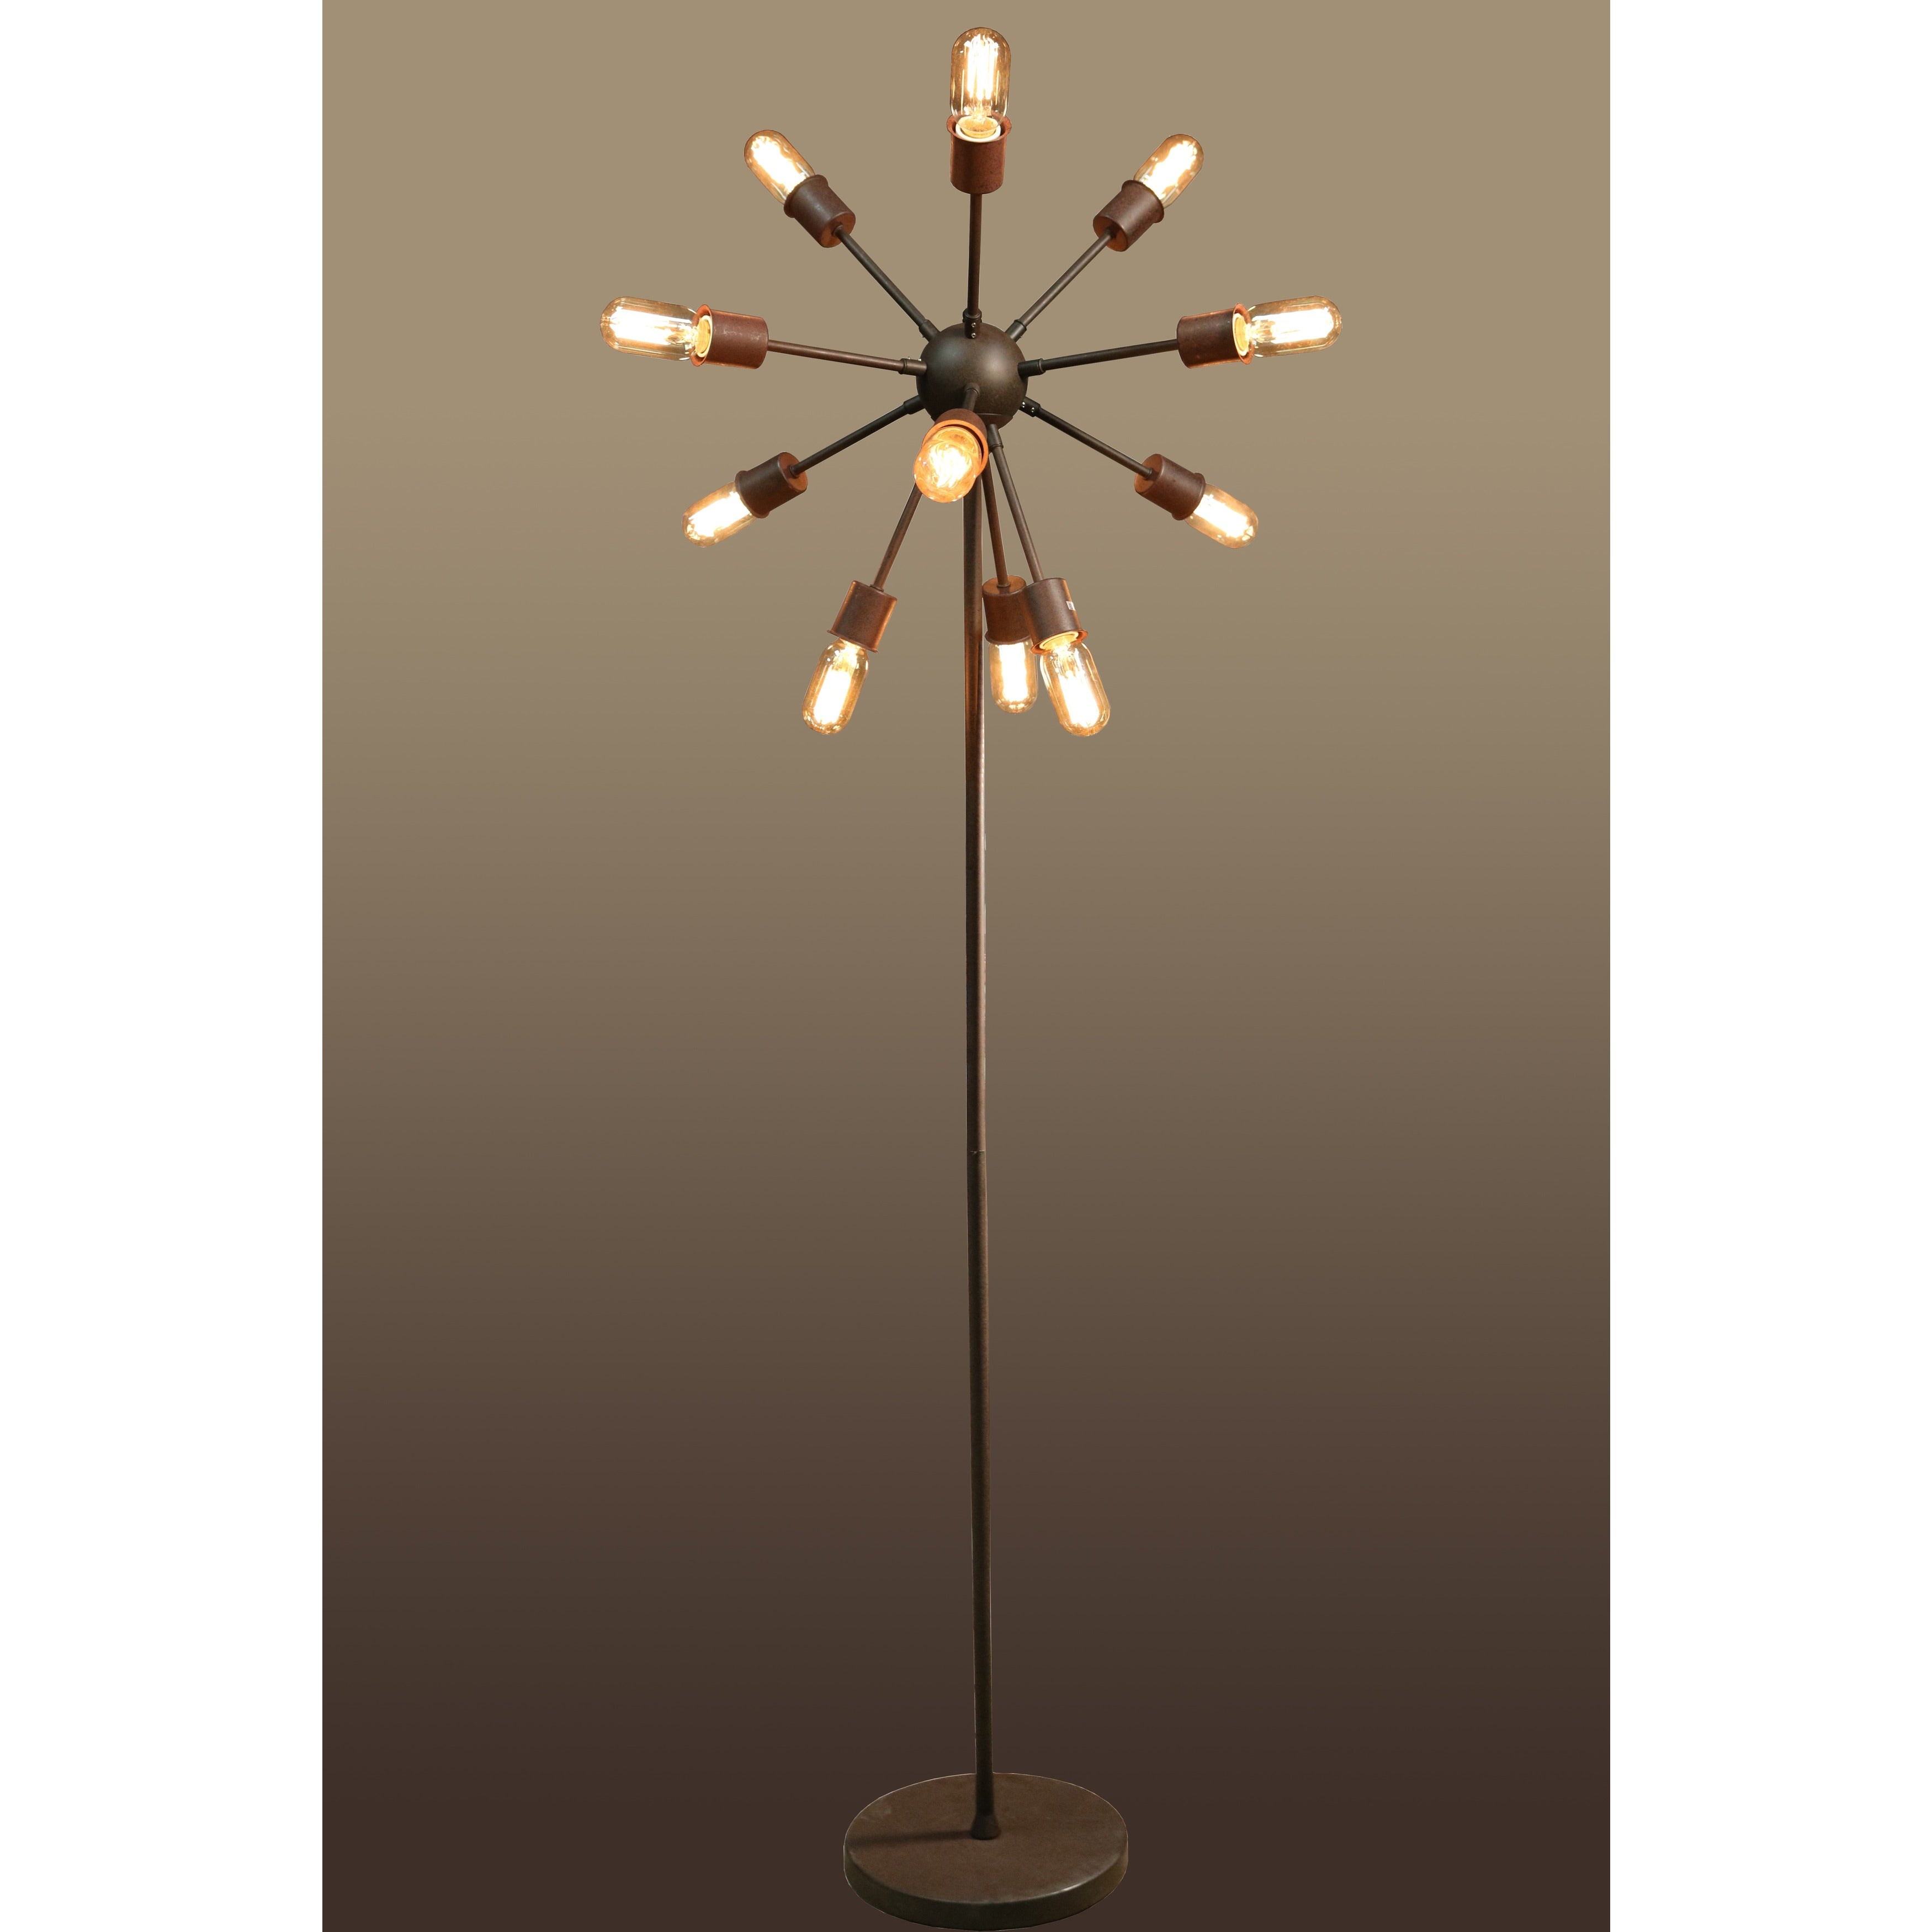 Lovely Marguirite 12 Light Antique Bronze 16 Inch Edison Floor Lamp With Bulbs    Free Shipping Today   Overstock.com   18182282